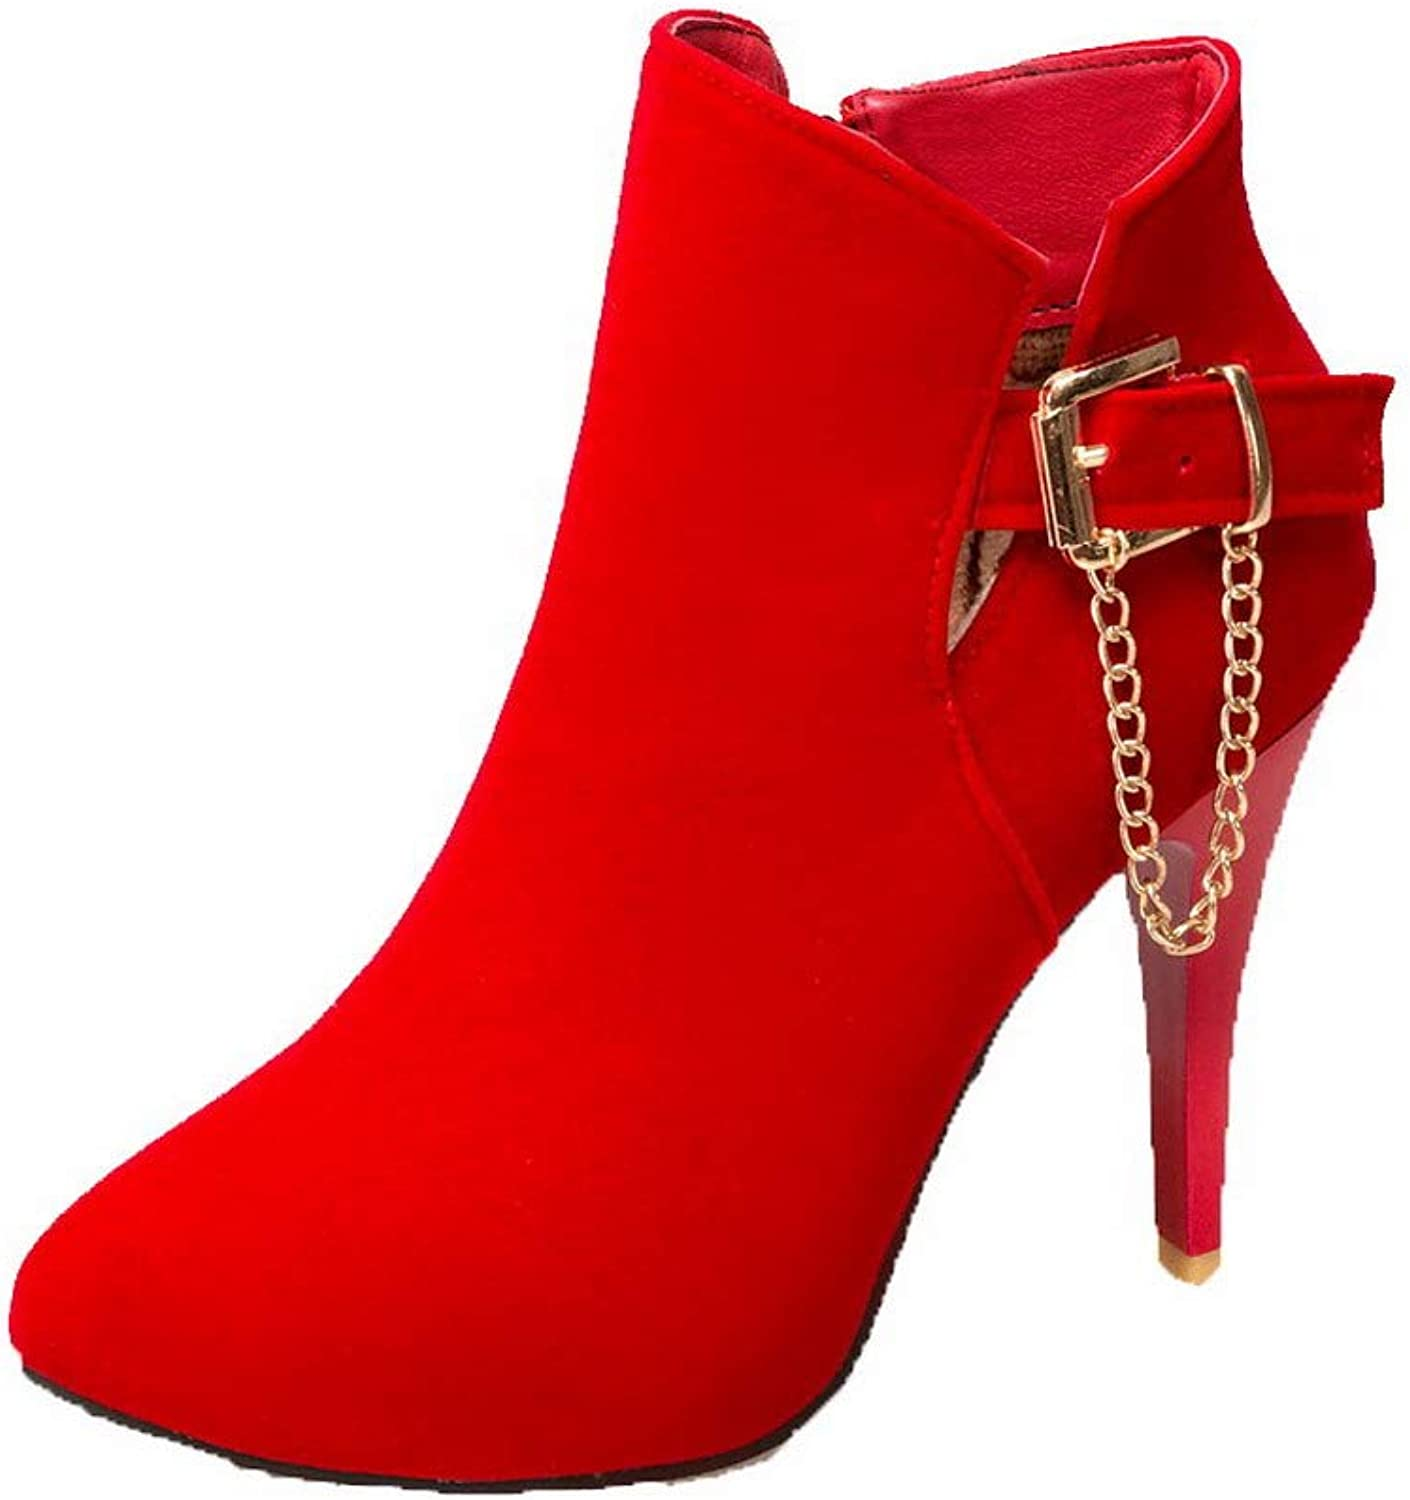 WeiPoot Women's Zipper High-Heels Imitated Suede Solid Ankle-High Boots, EGHXH126238